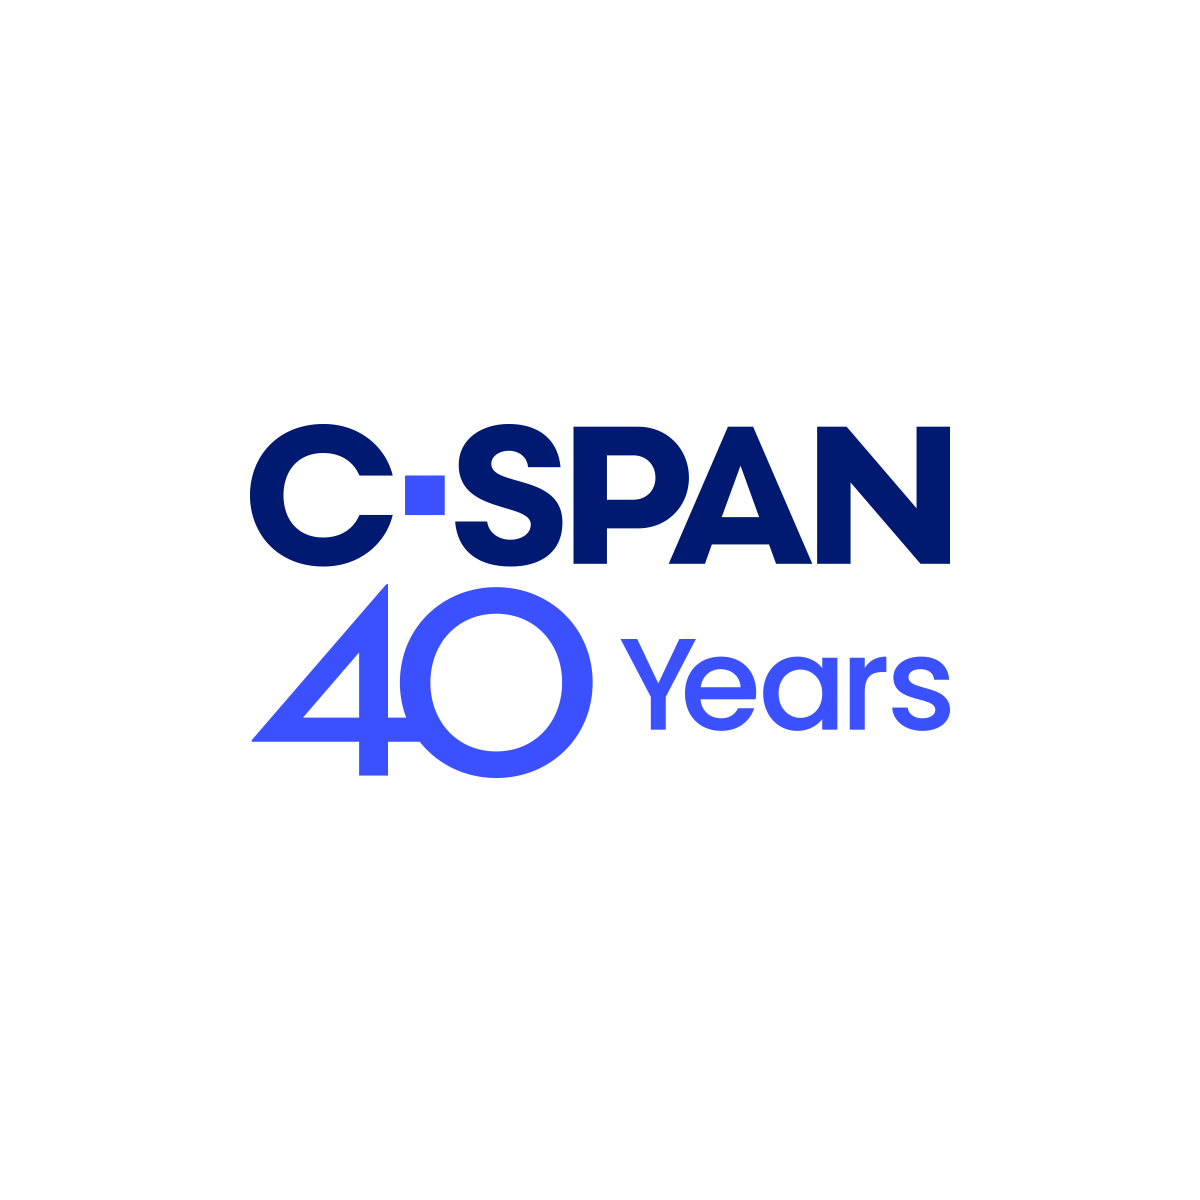 CSpan 40th year logo, an American cable and satellite television network that was created in 1979 by the cable television industry as a nonprofit public service.